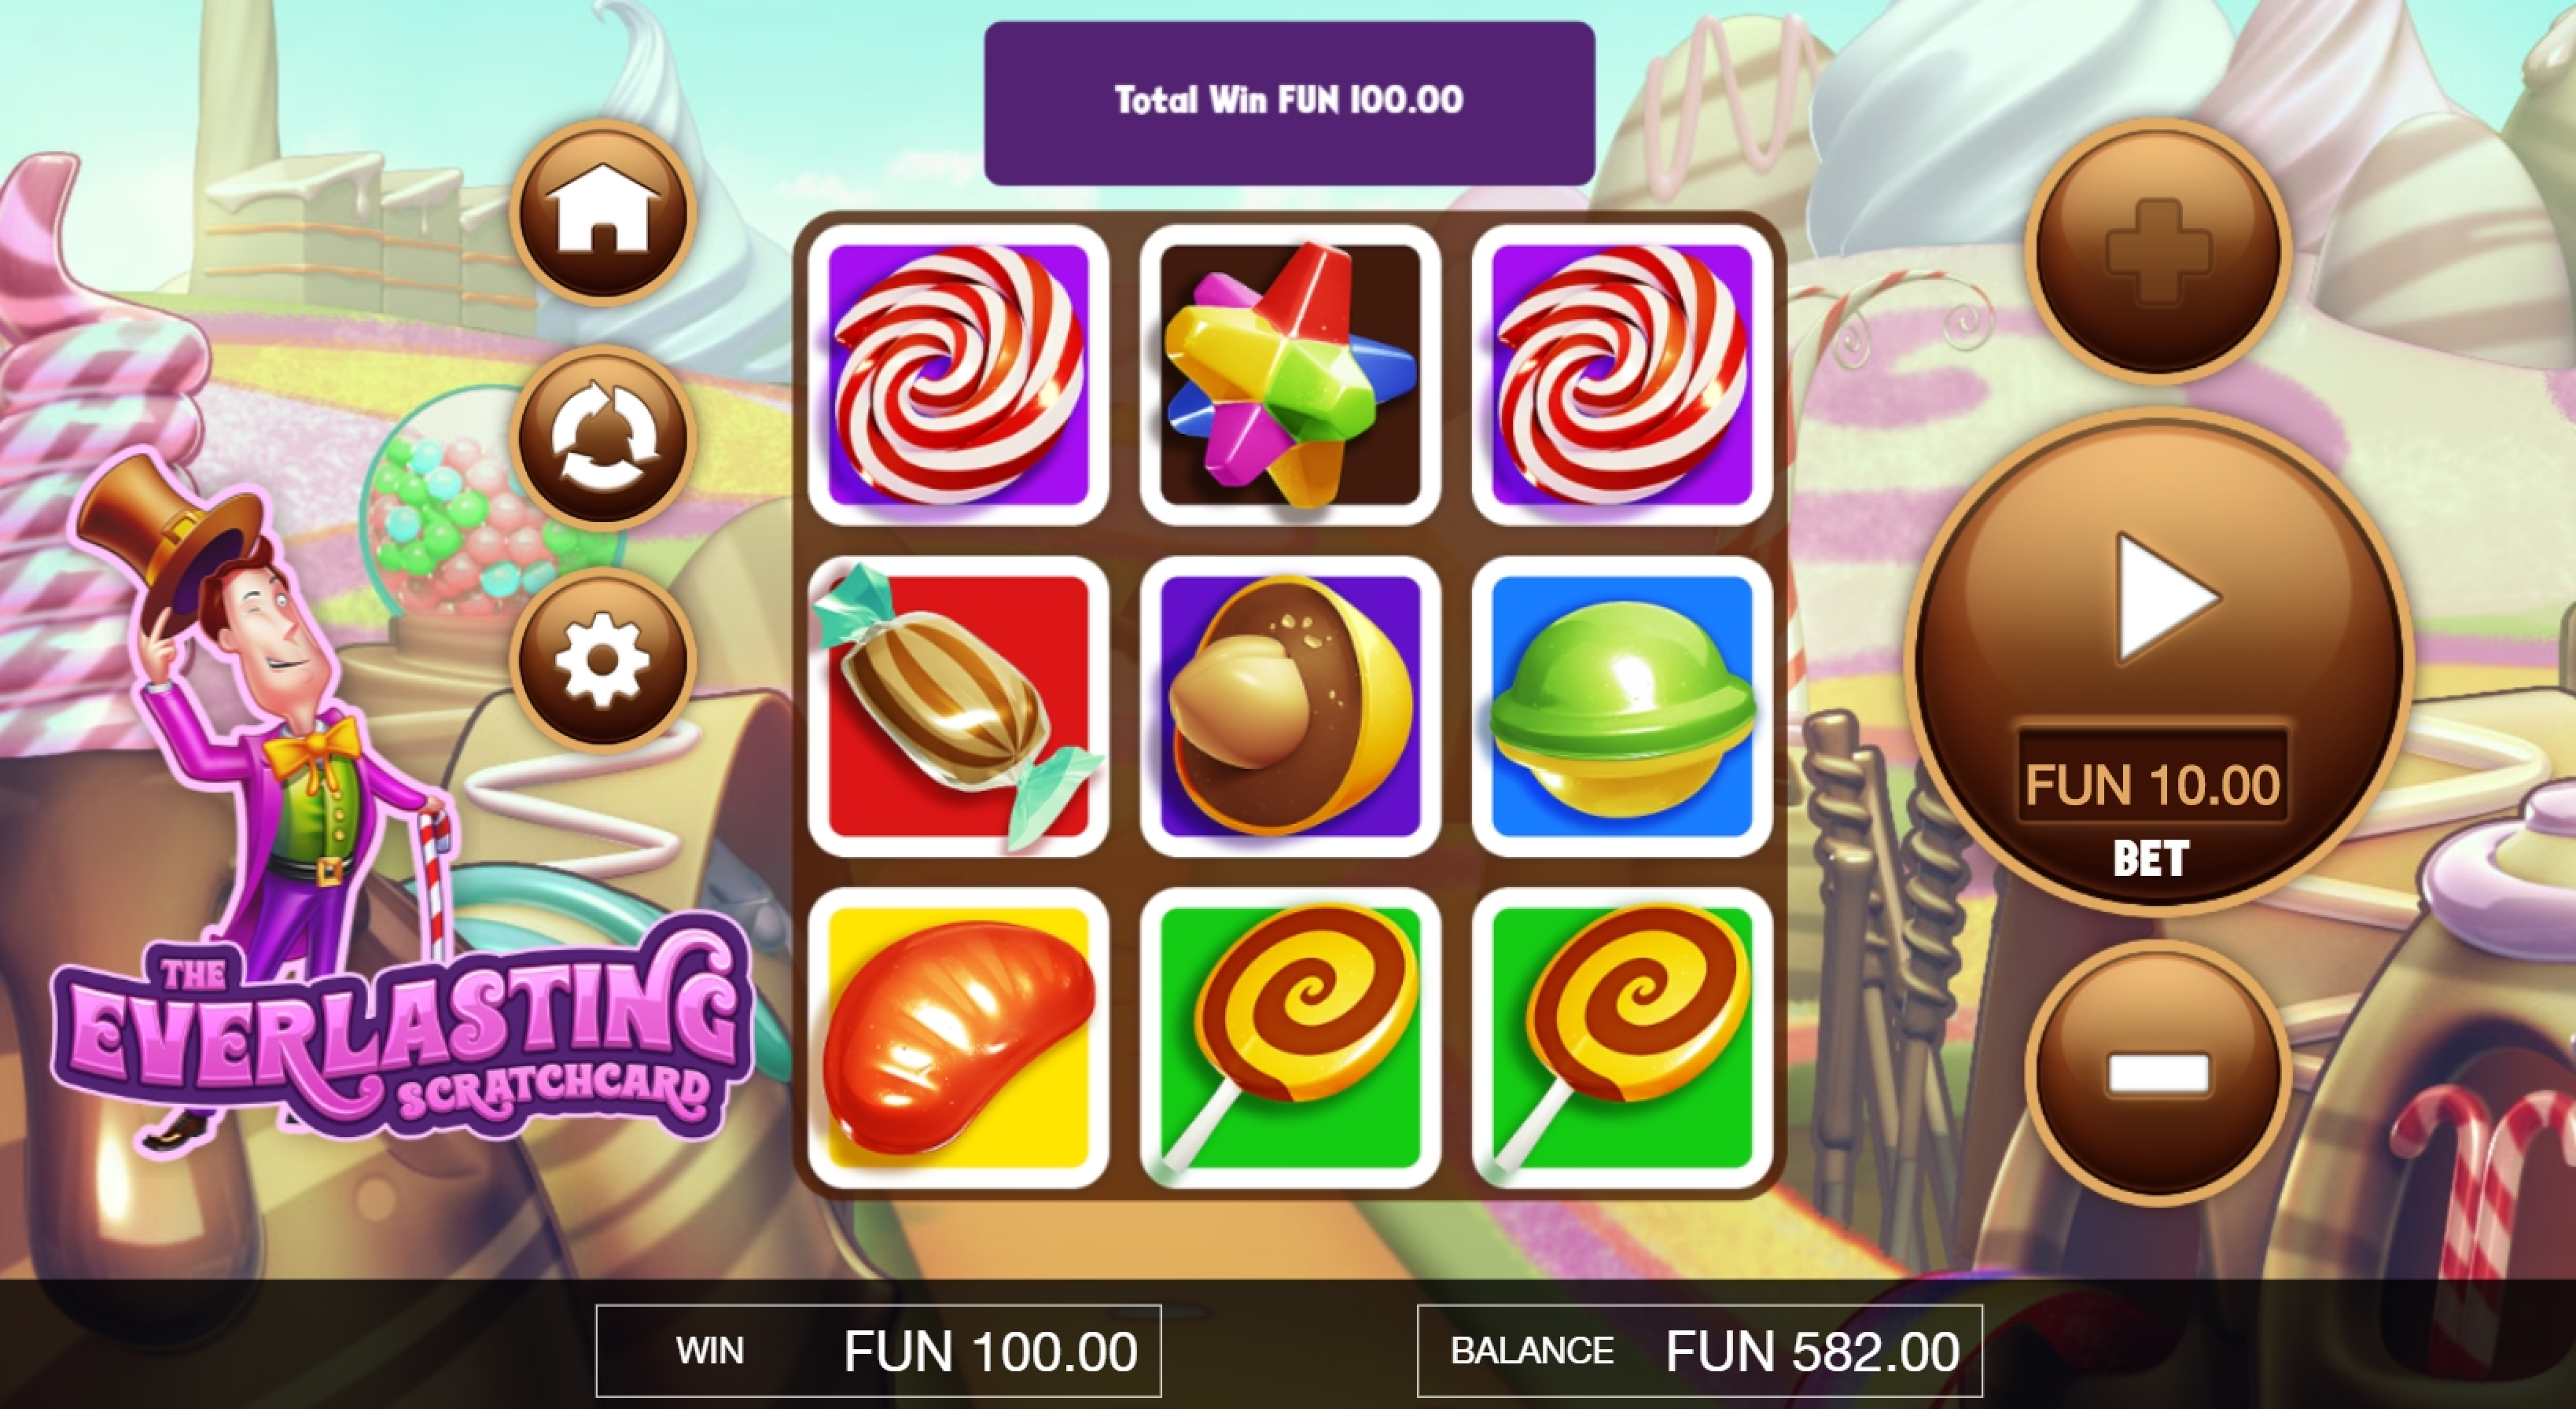 Win Money in The Everlasting Scratchcard Free Slot Game by Probability Jones